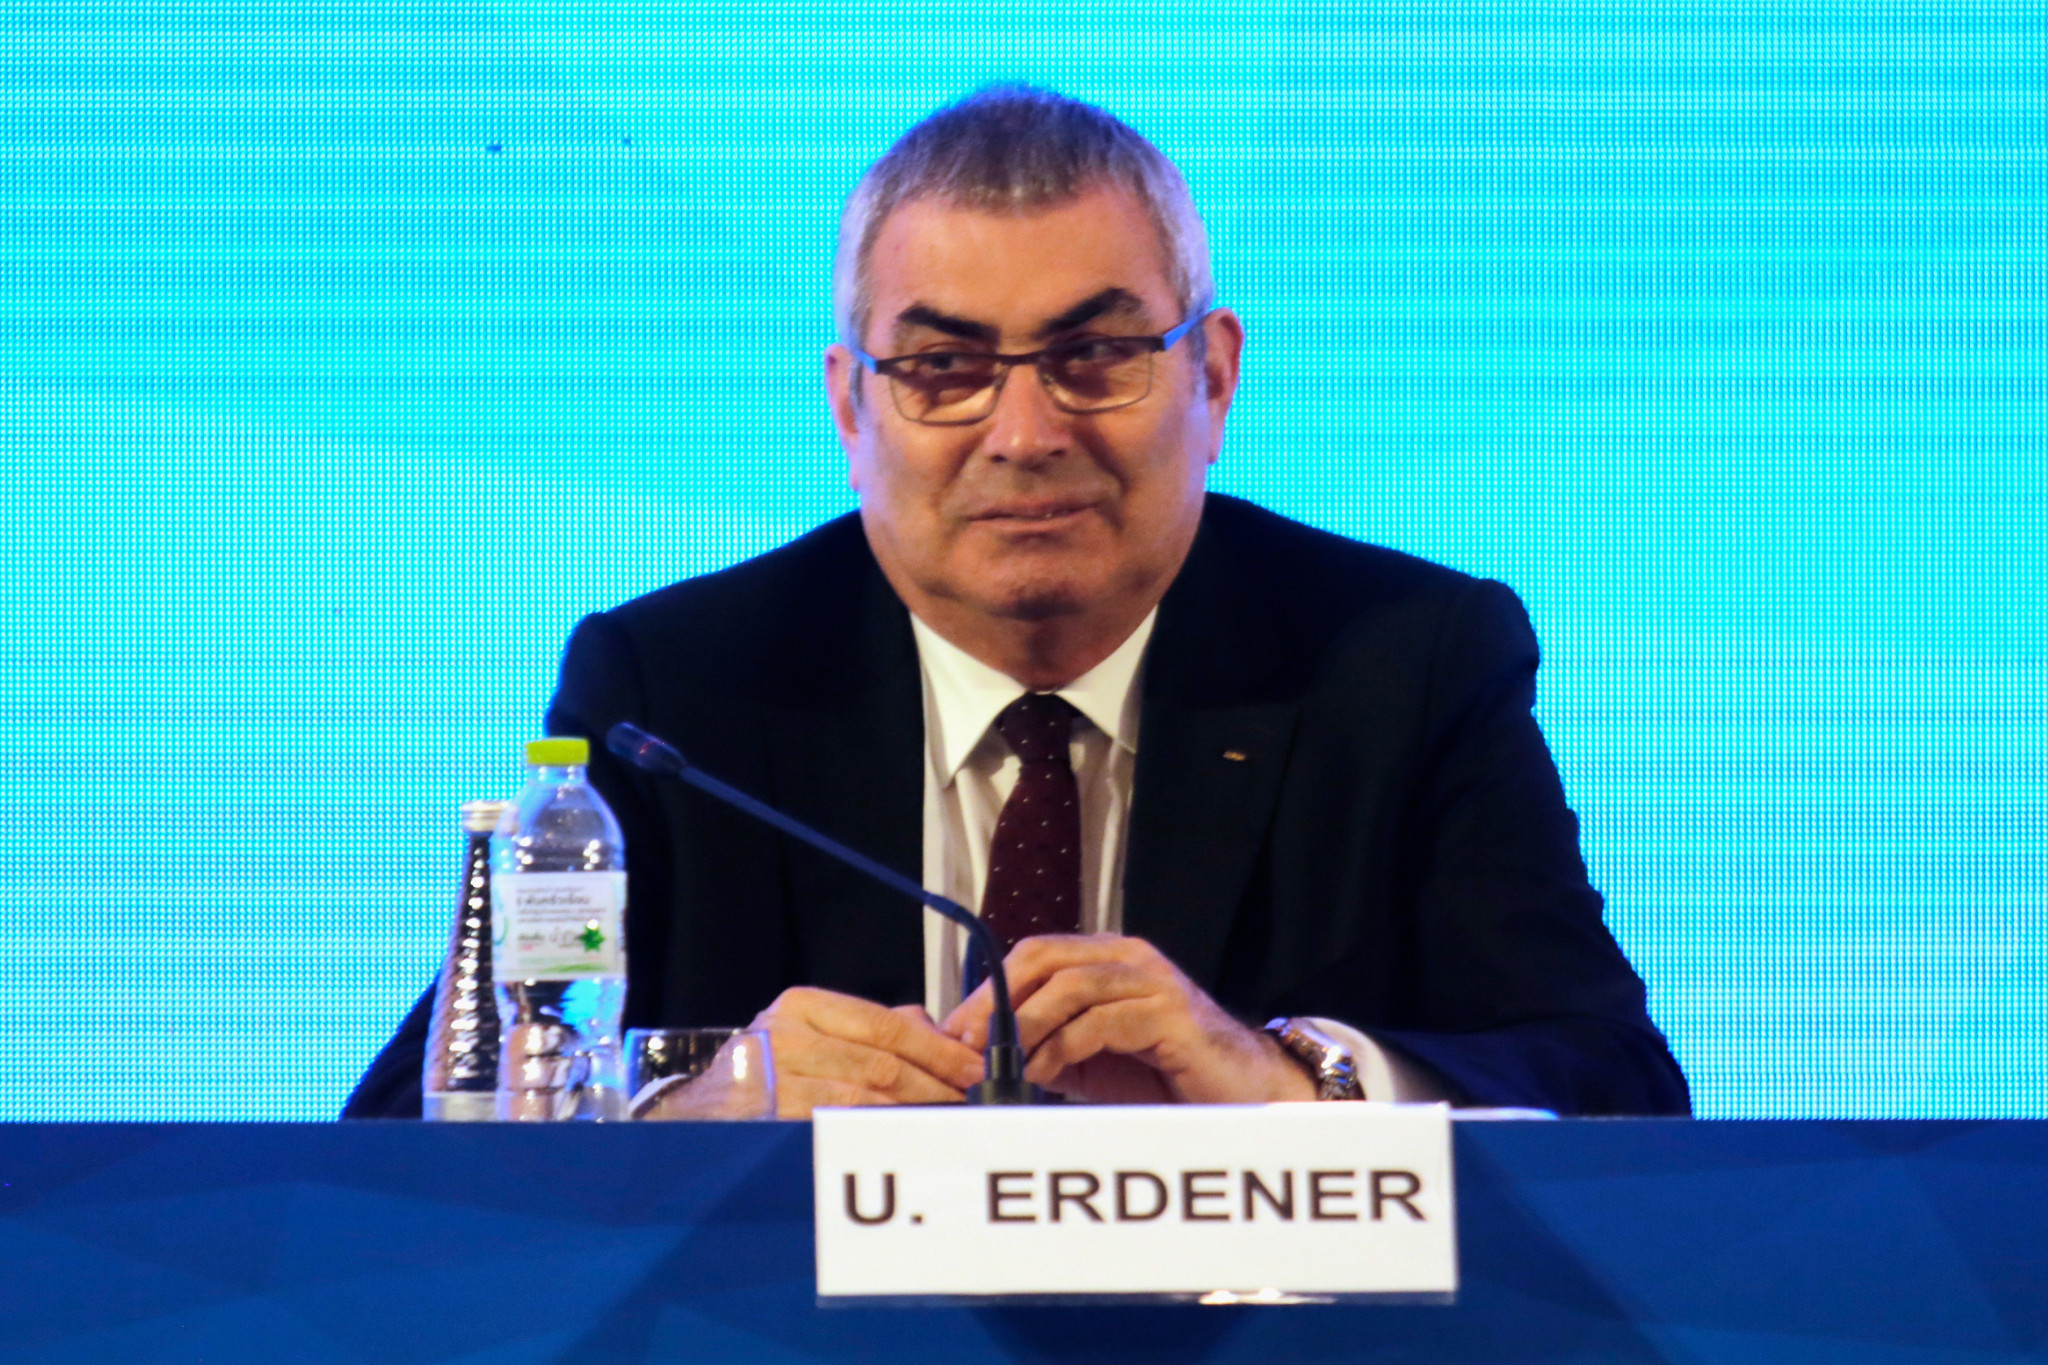 Uğur Erdener is the current World Archery President ©Getty Images